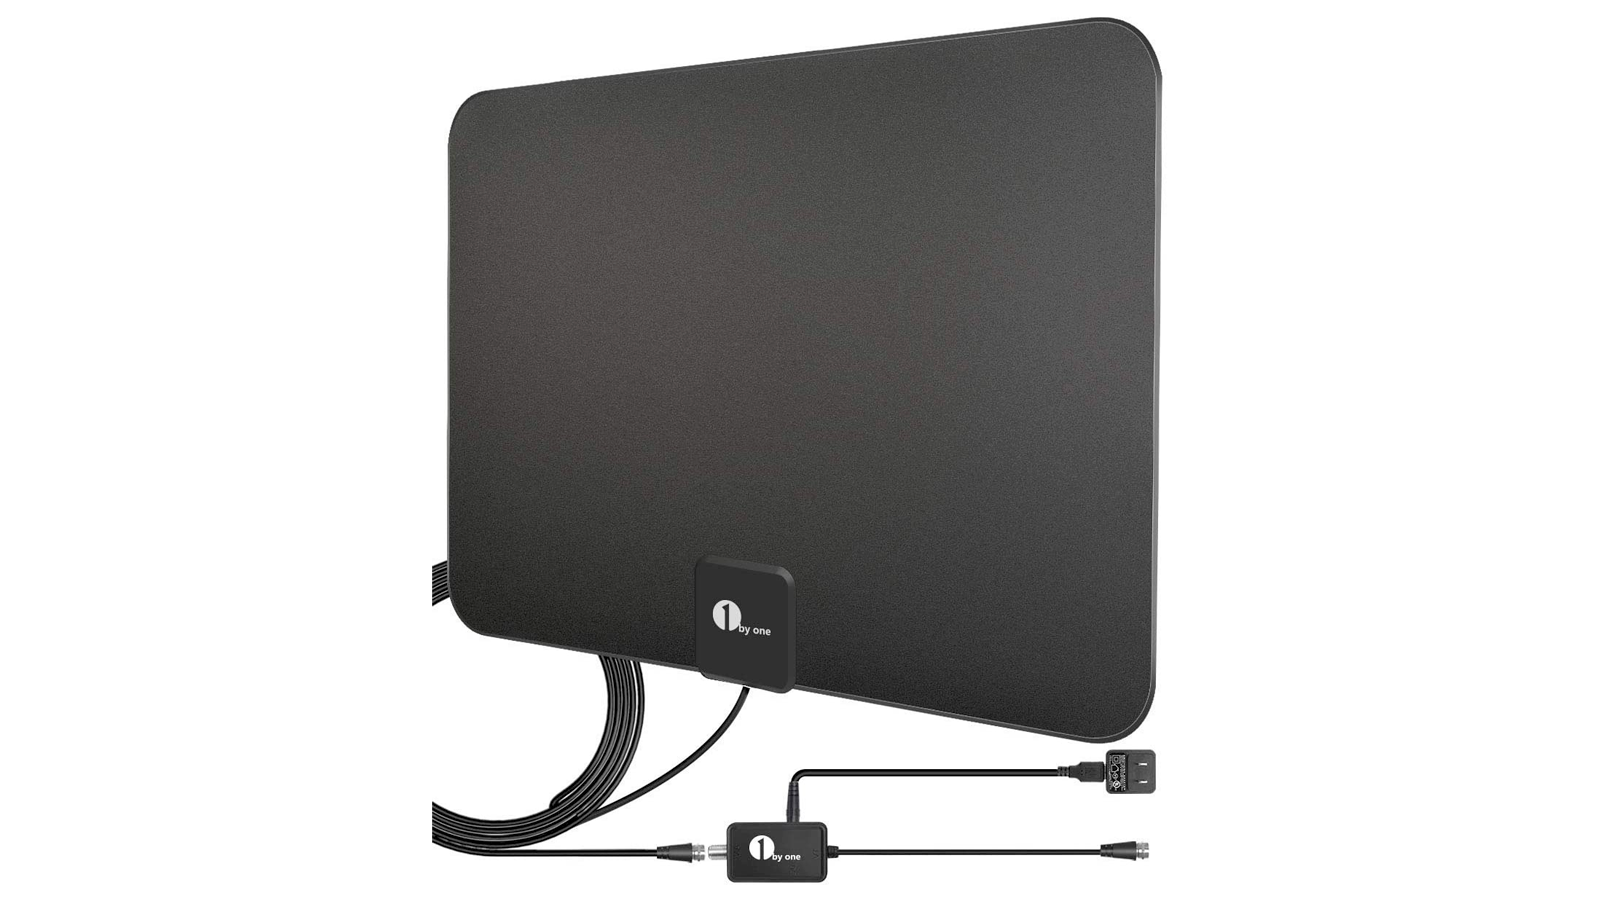 The 1 BY ONE digital antenna for OTA TV.